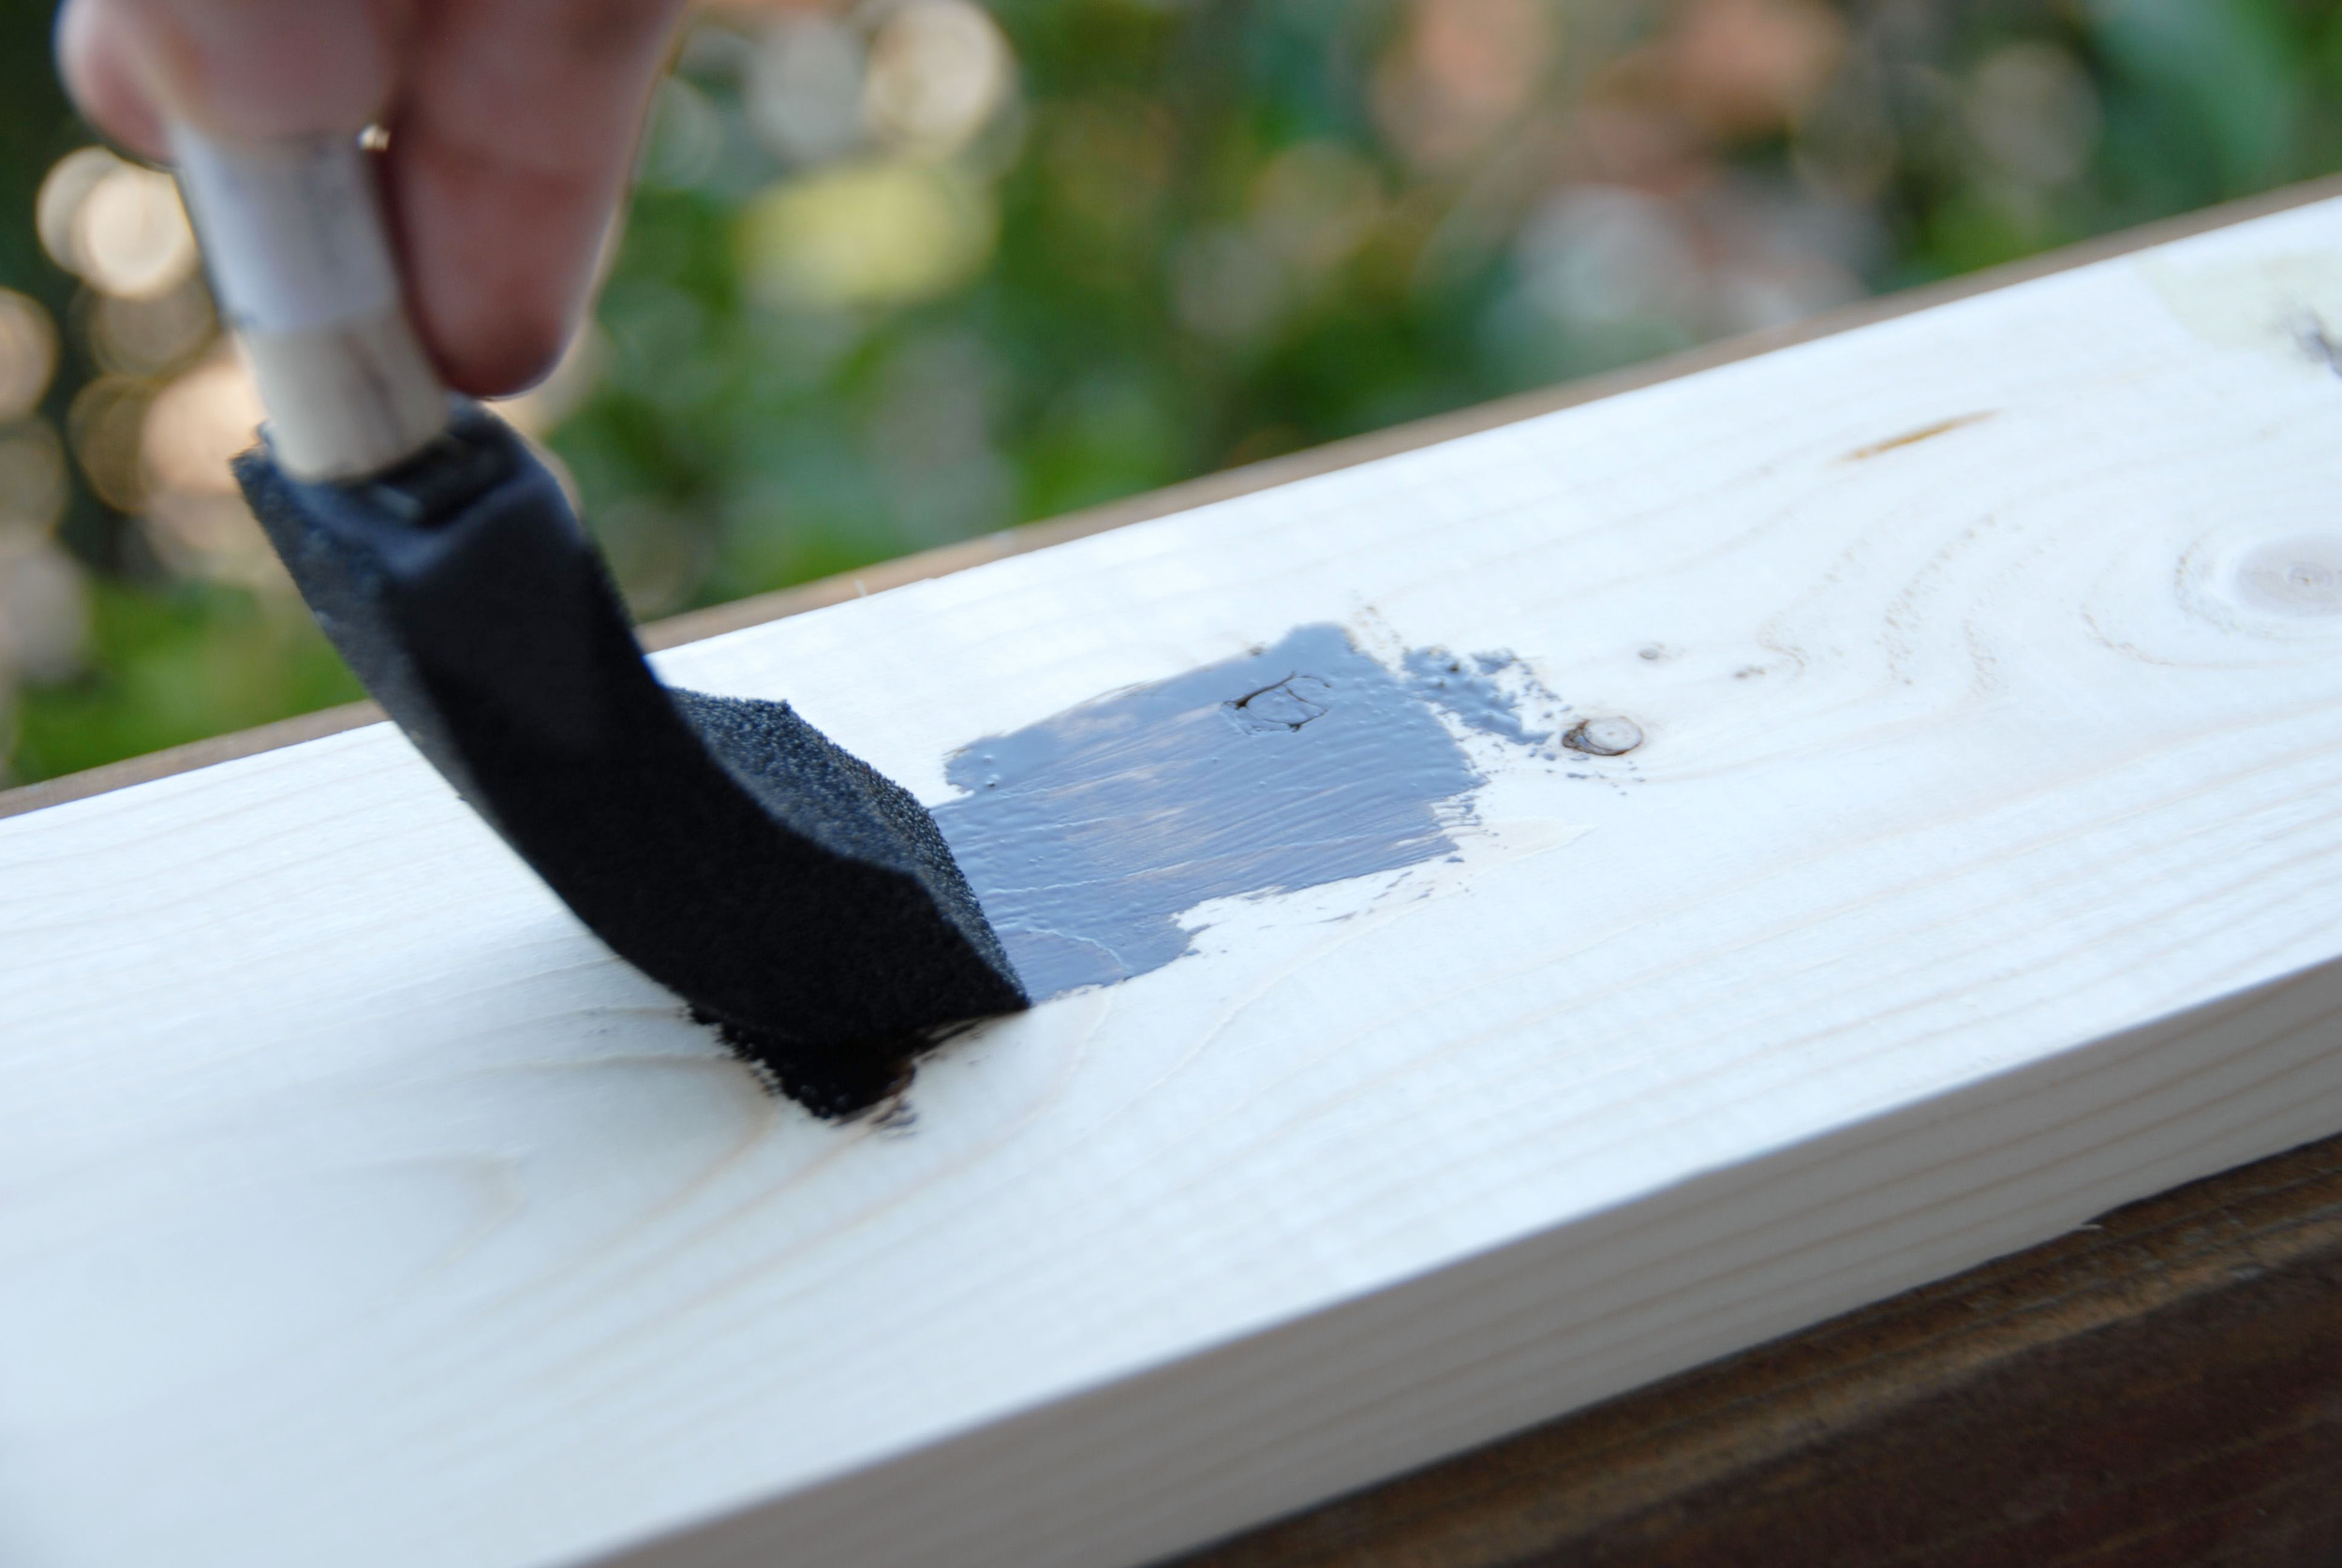 Apply a thin coat of stain, going with the grain, to the boards.